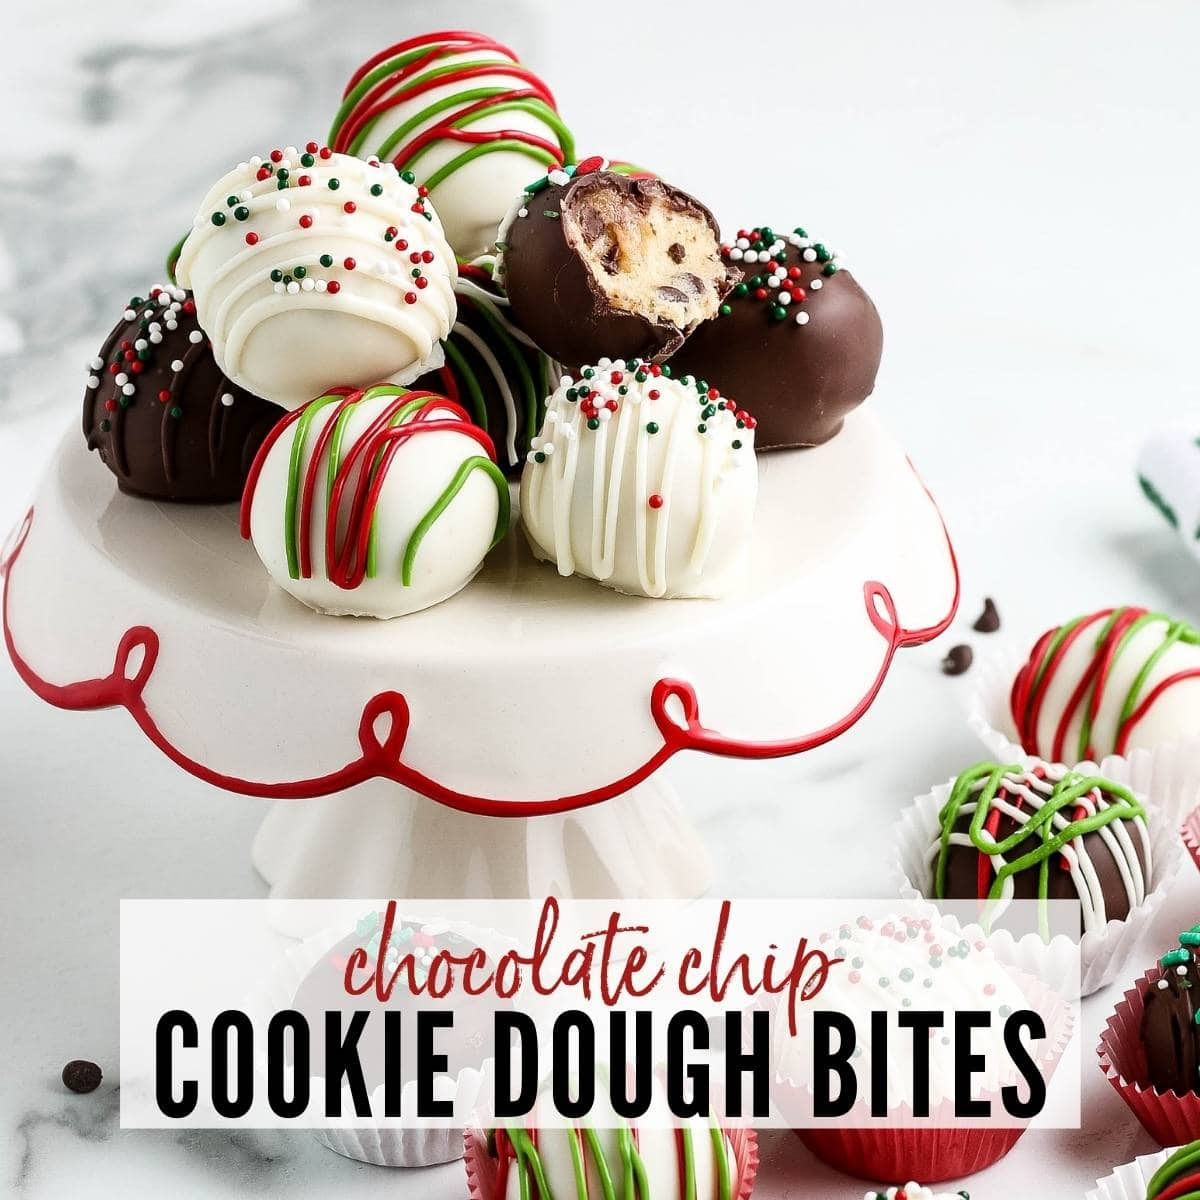 chocolate covered cookie dough bites decorated for the holidays with text overlay